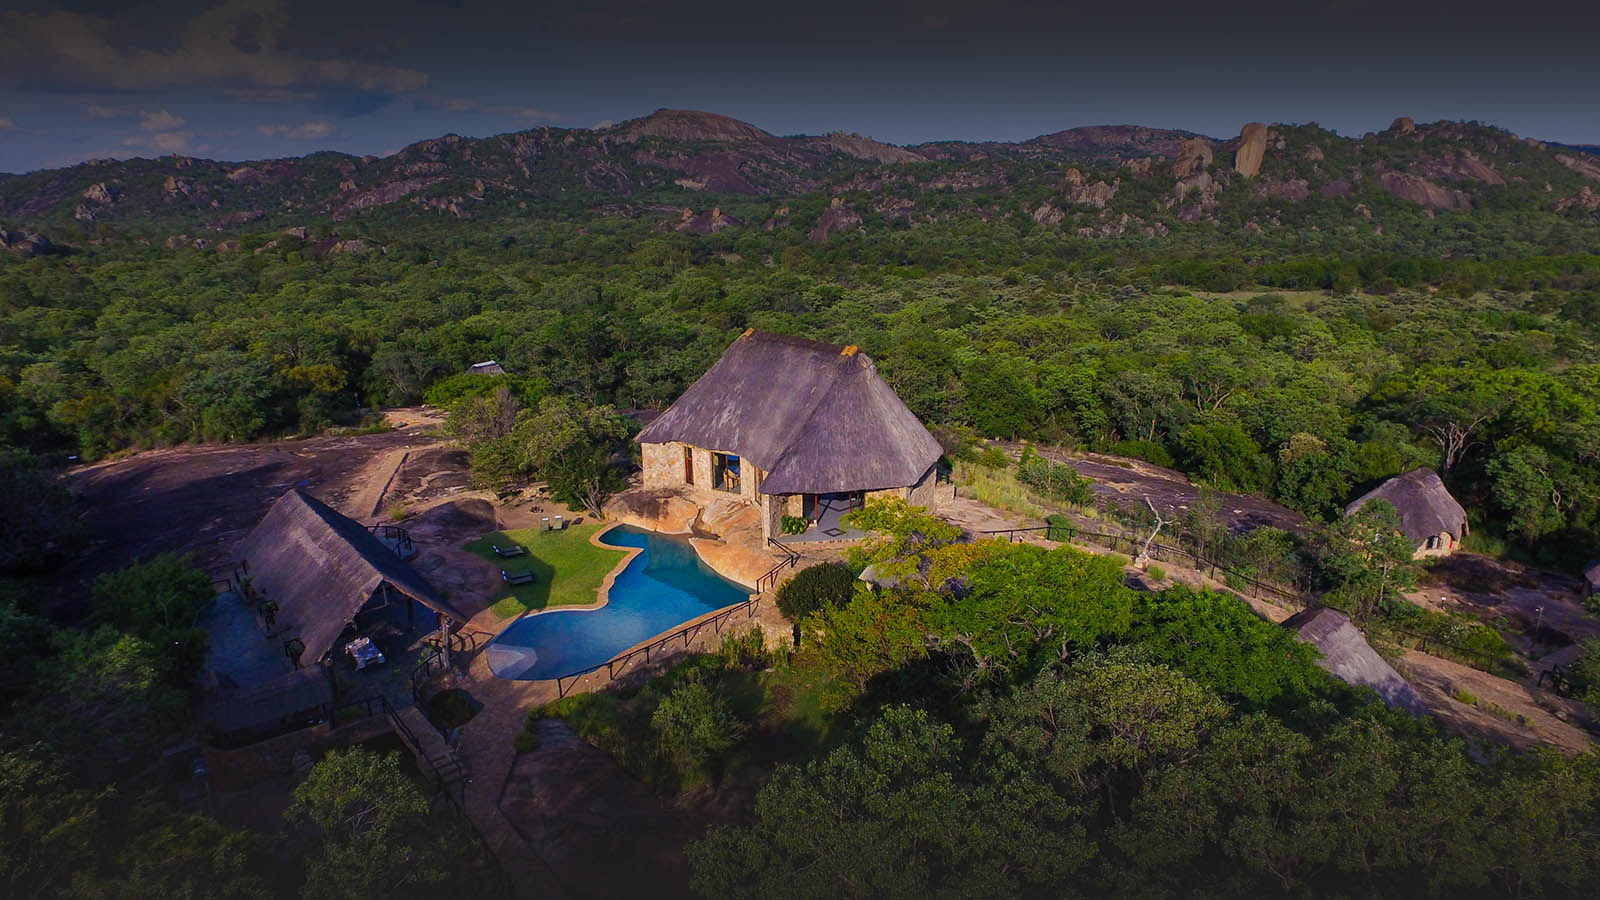 matobo hills lodge-zimbabwe-lodges-accommodation-matopos-matobo-national-park-aerial